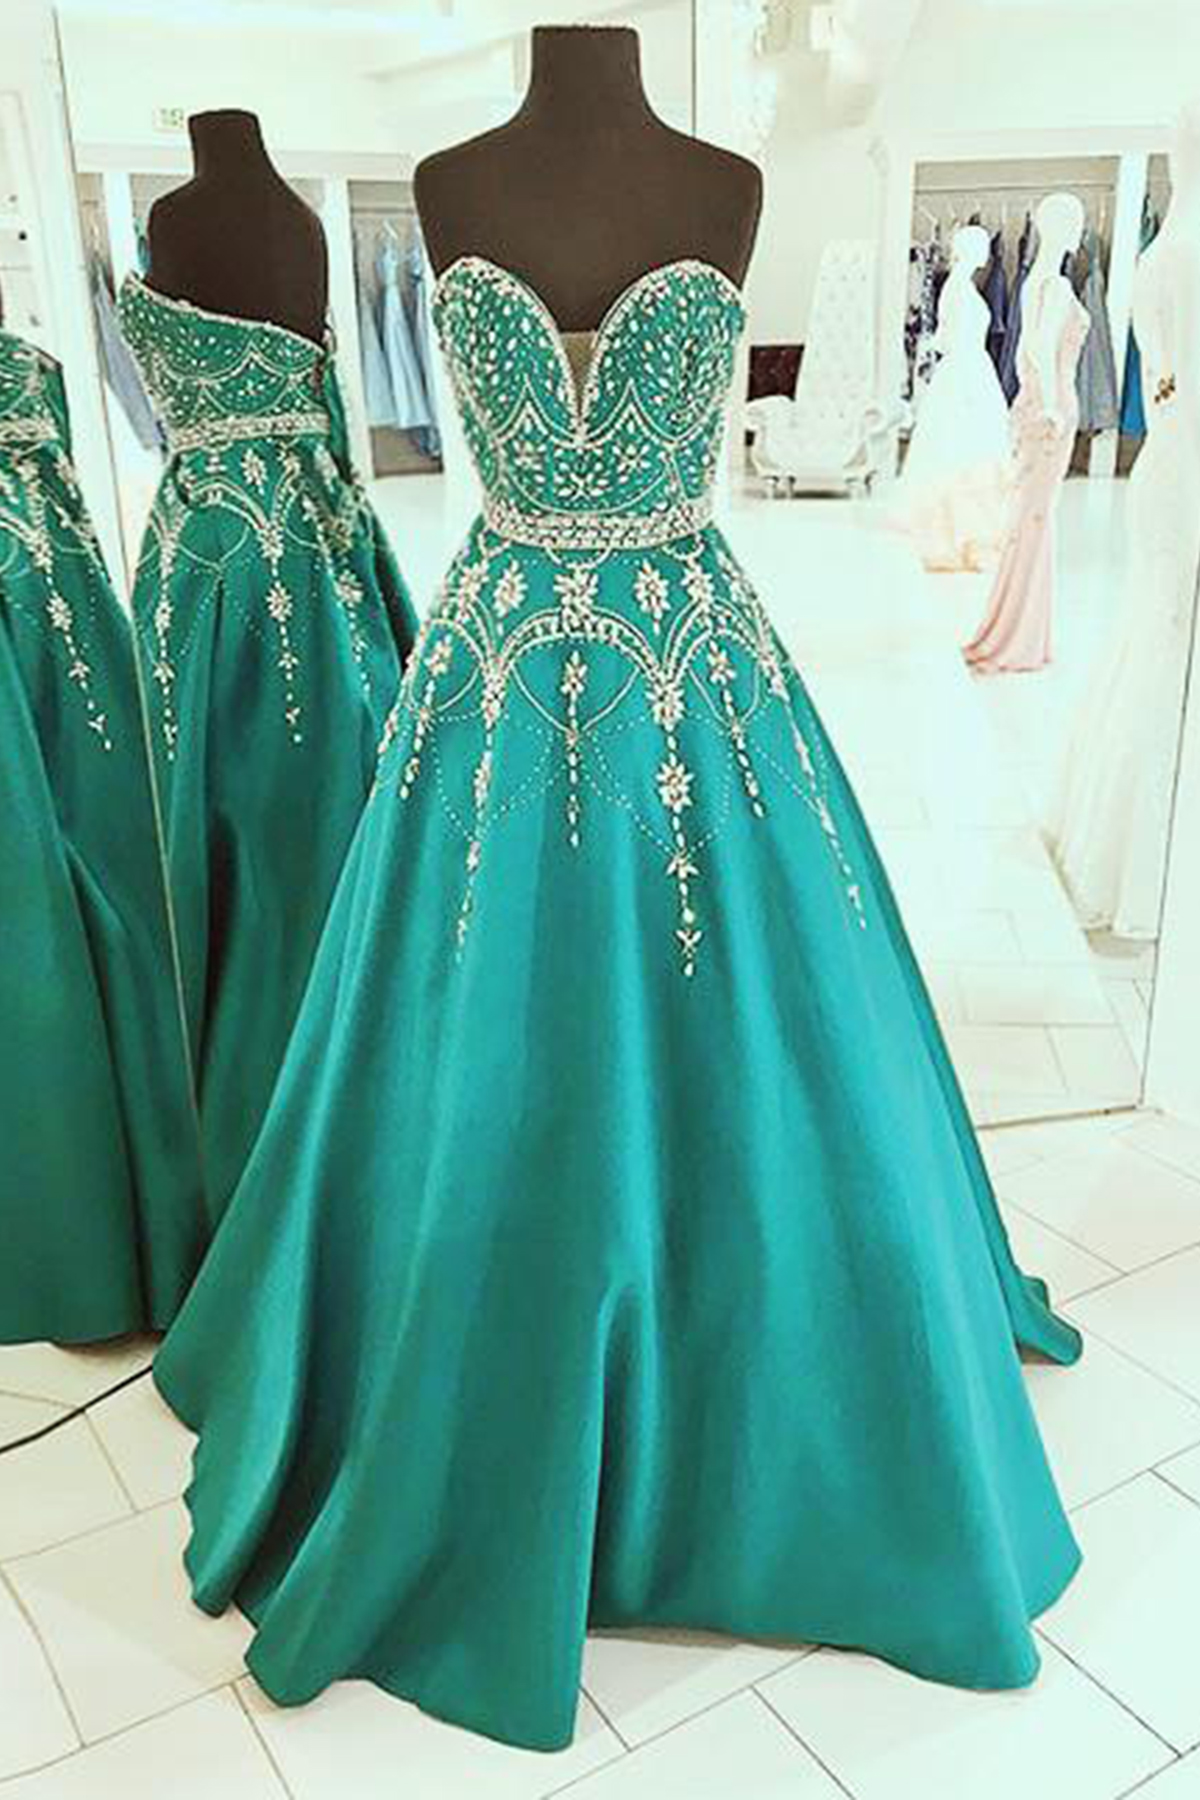 Shinning silver rhinestone sweetheart spring party dress, green ...